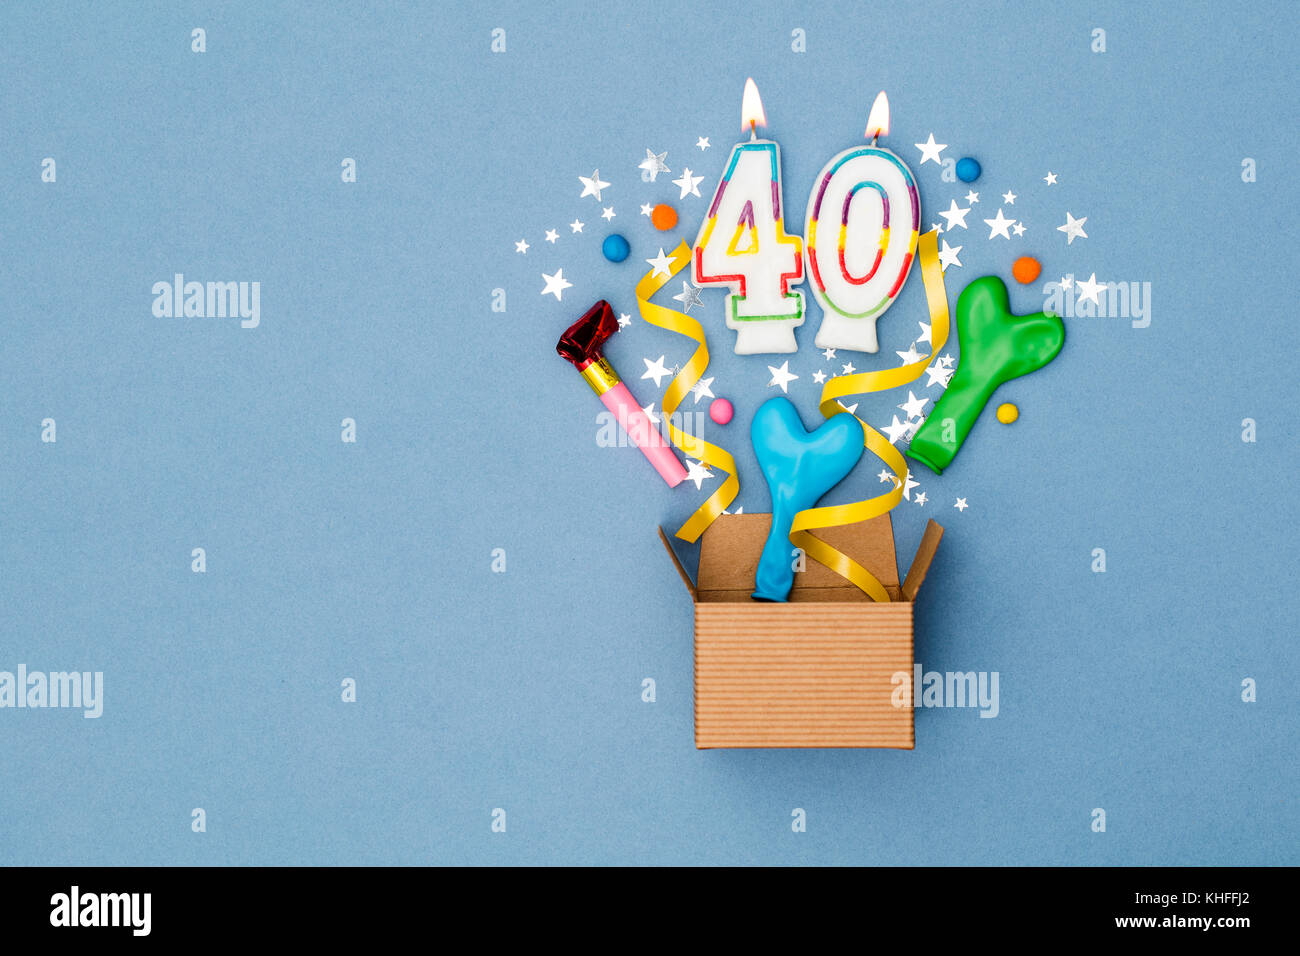 Number 40 Celebration Present Background Gift Box Exploding With Party Decorations